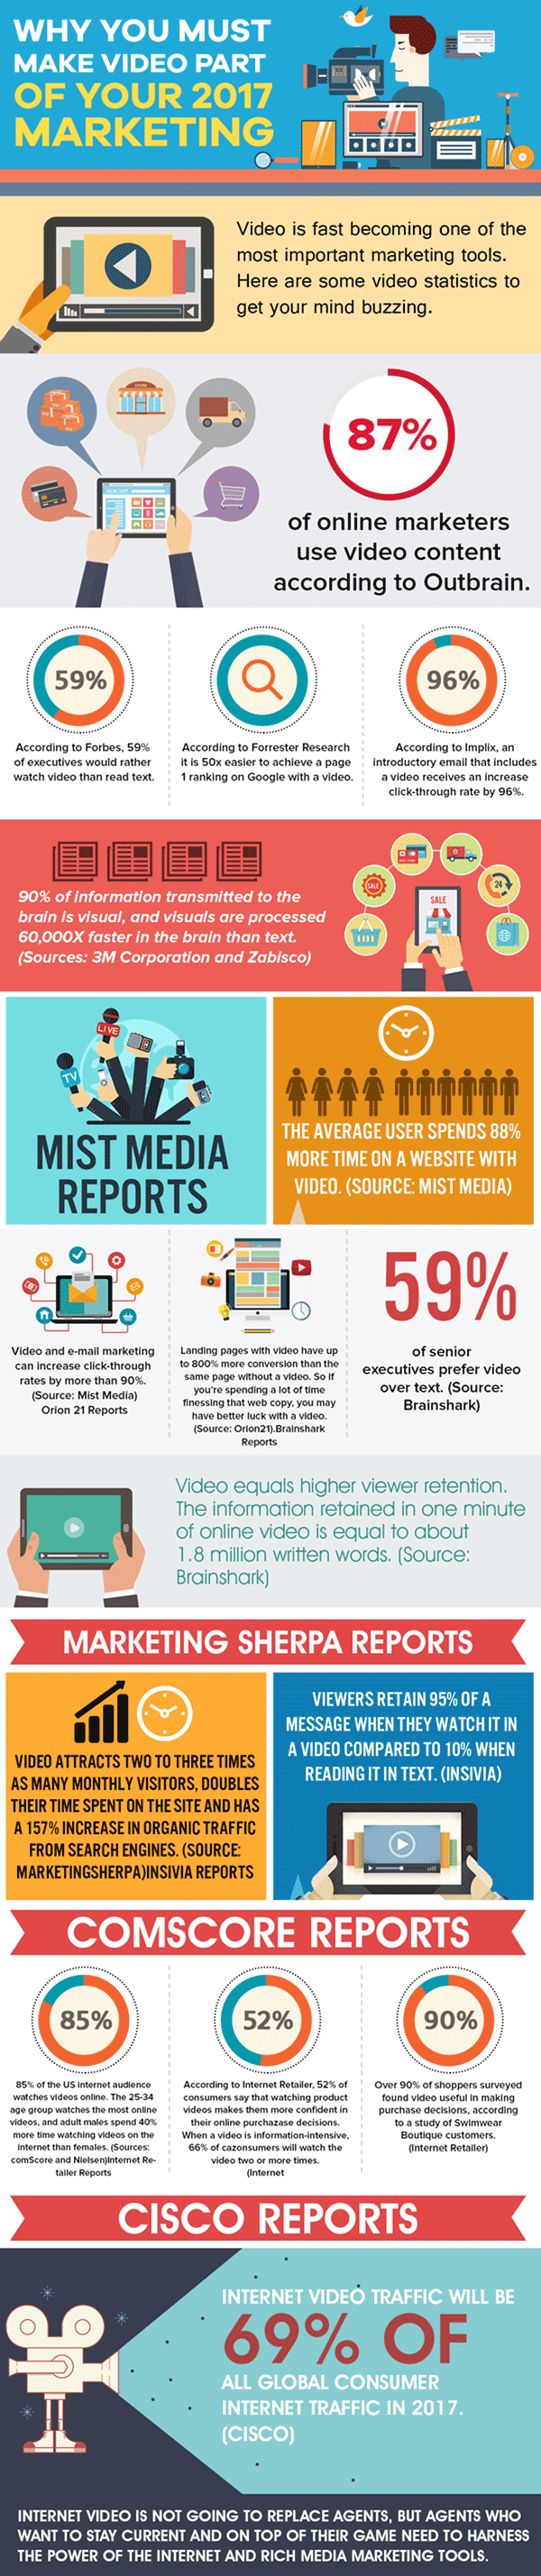 Video in Marketing full infographic